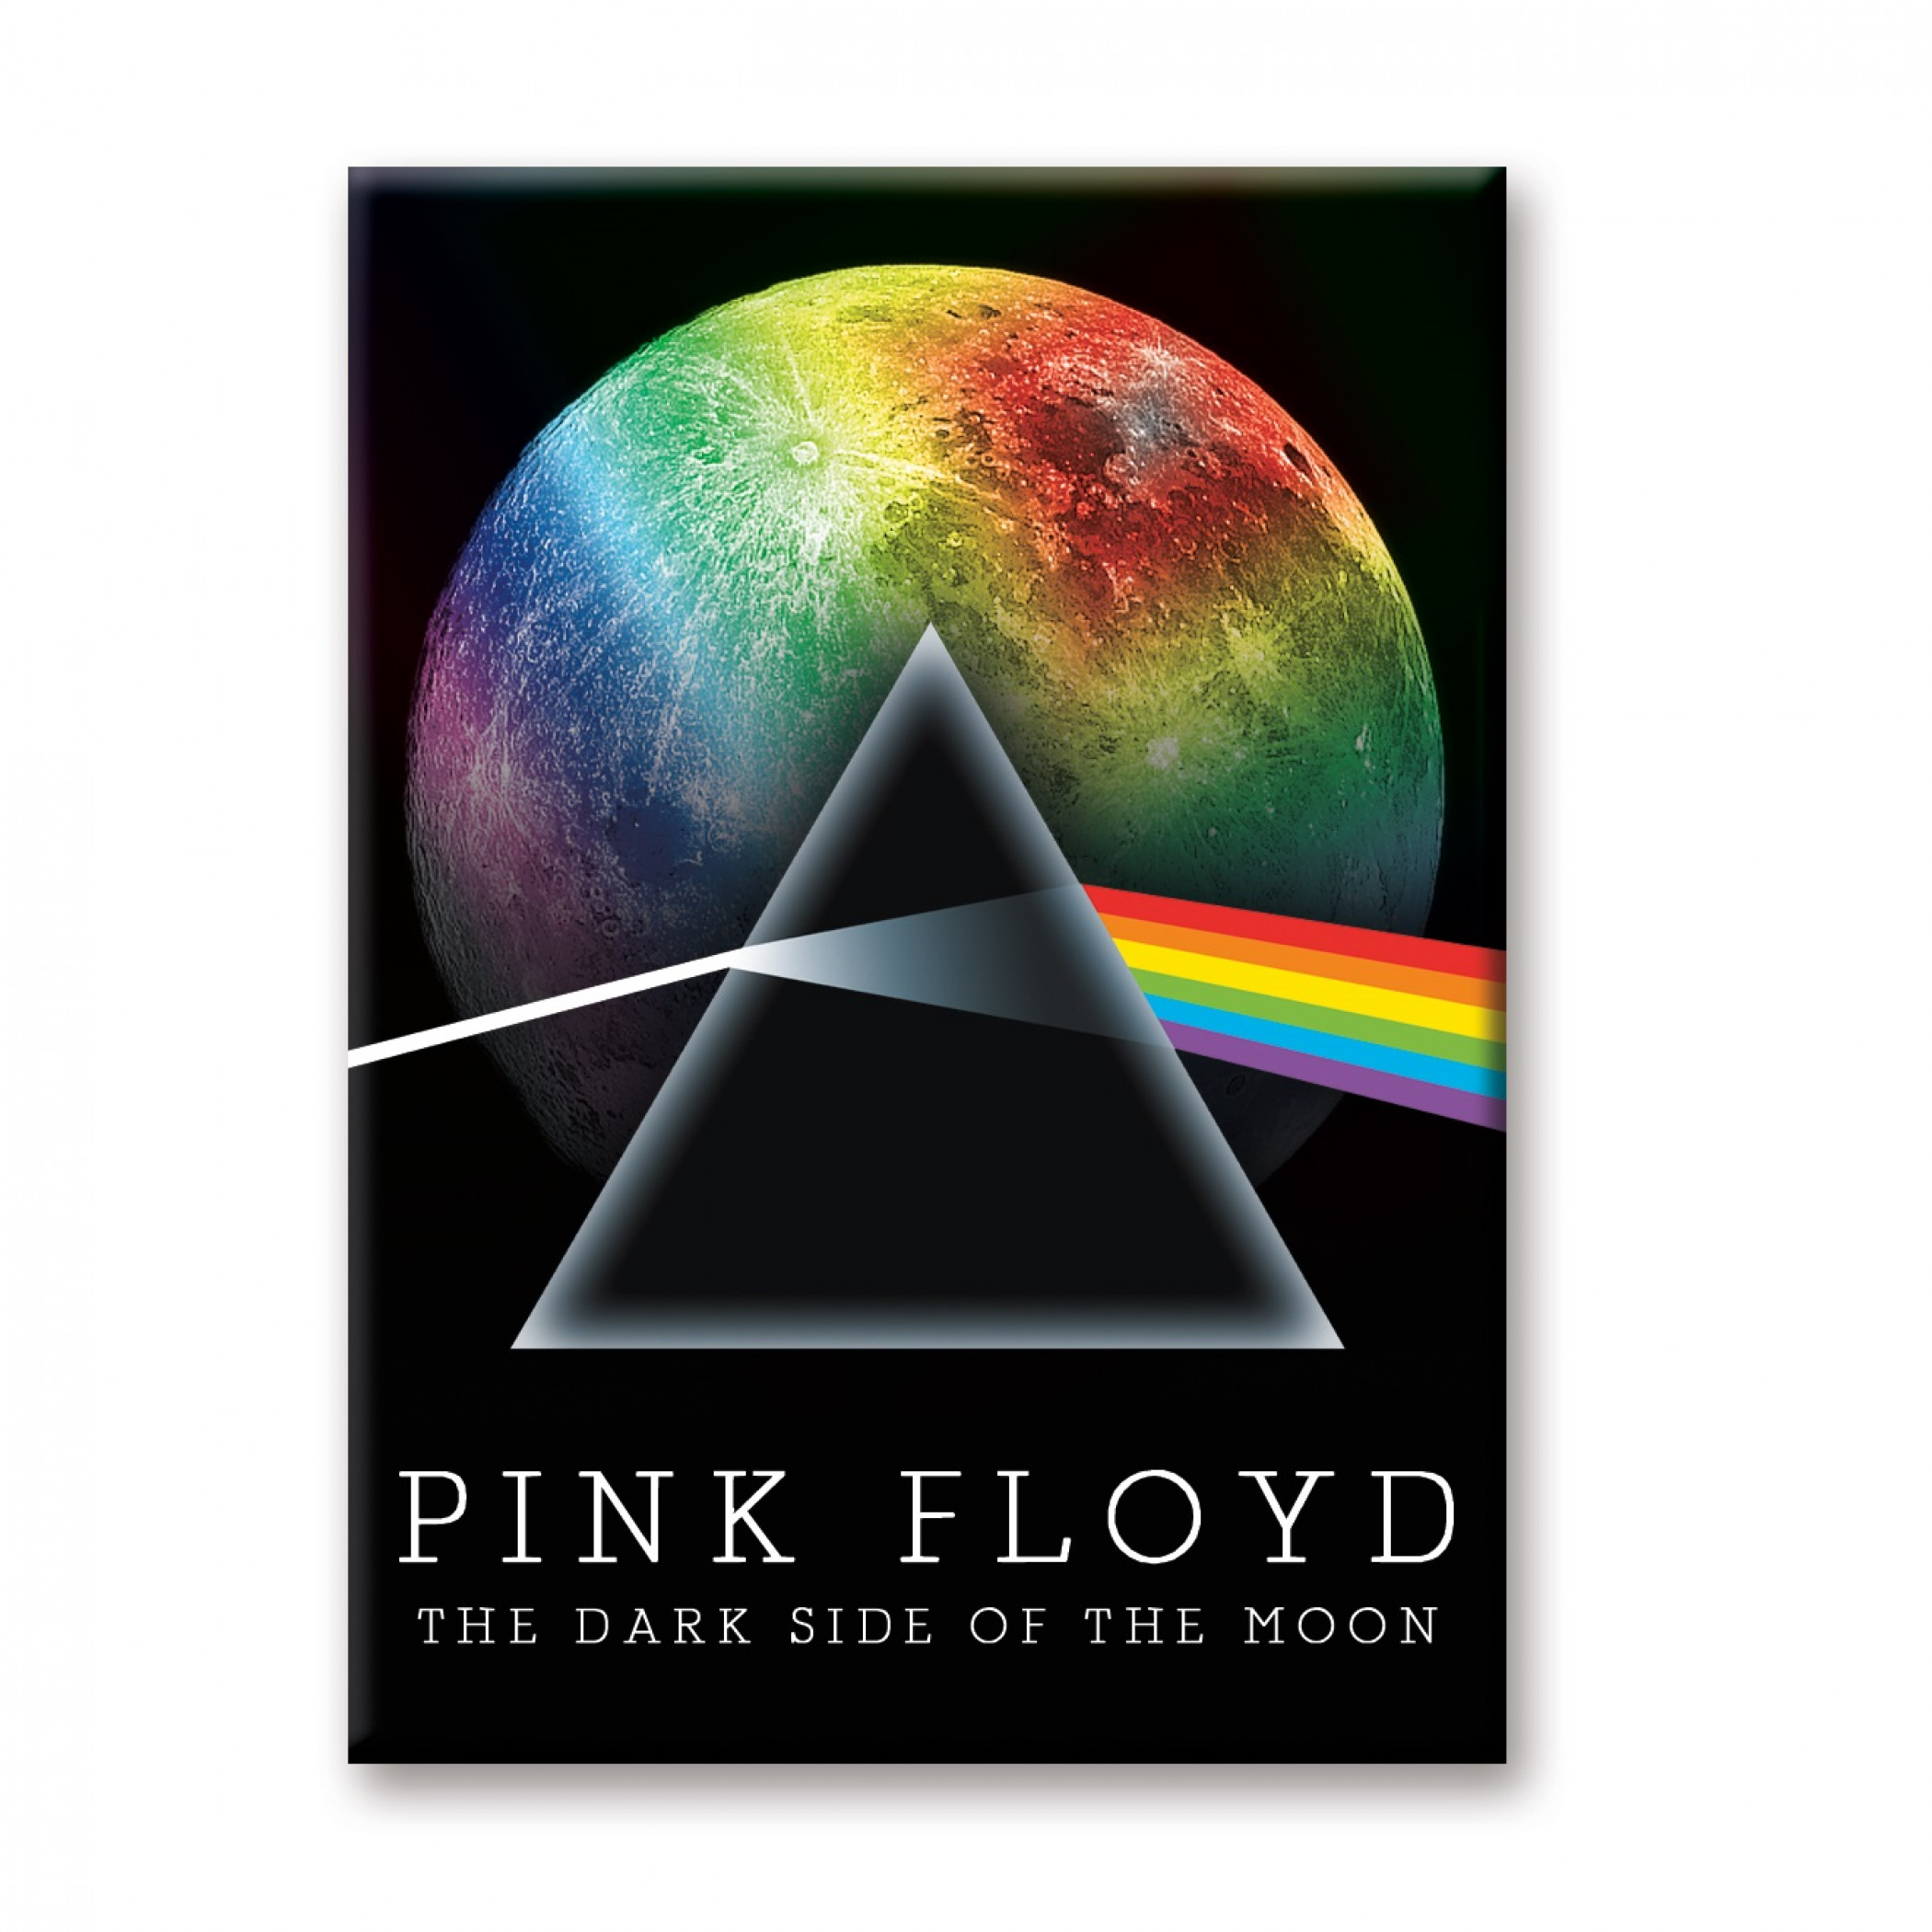 Pink Floyd The Dark Side of the Moon Magnet